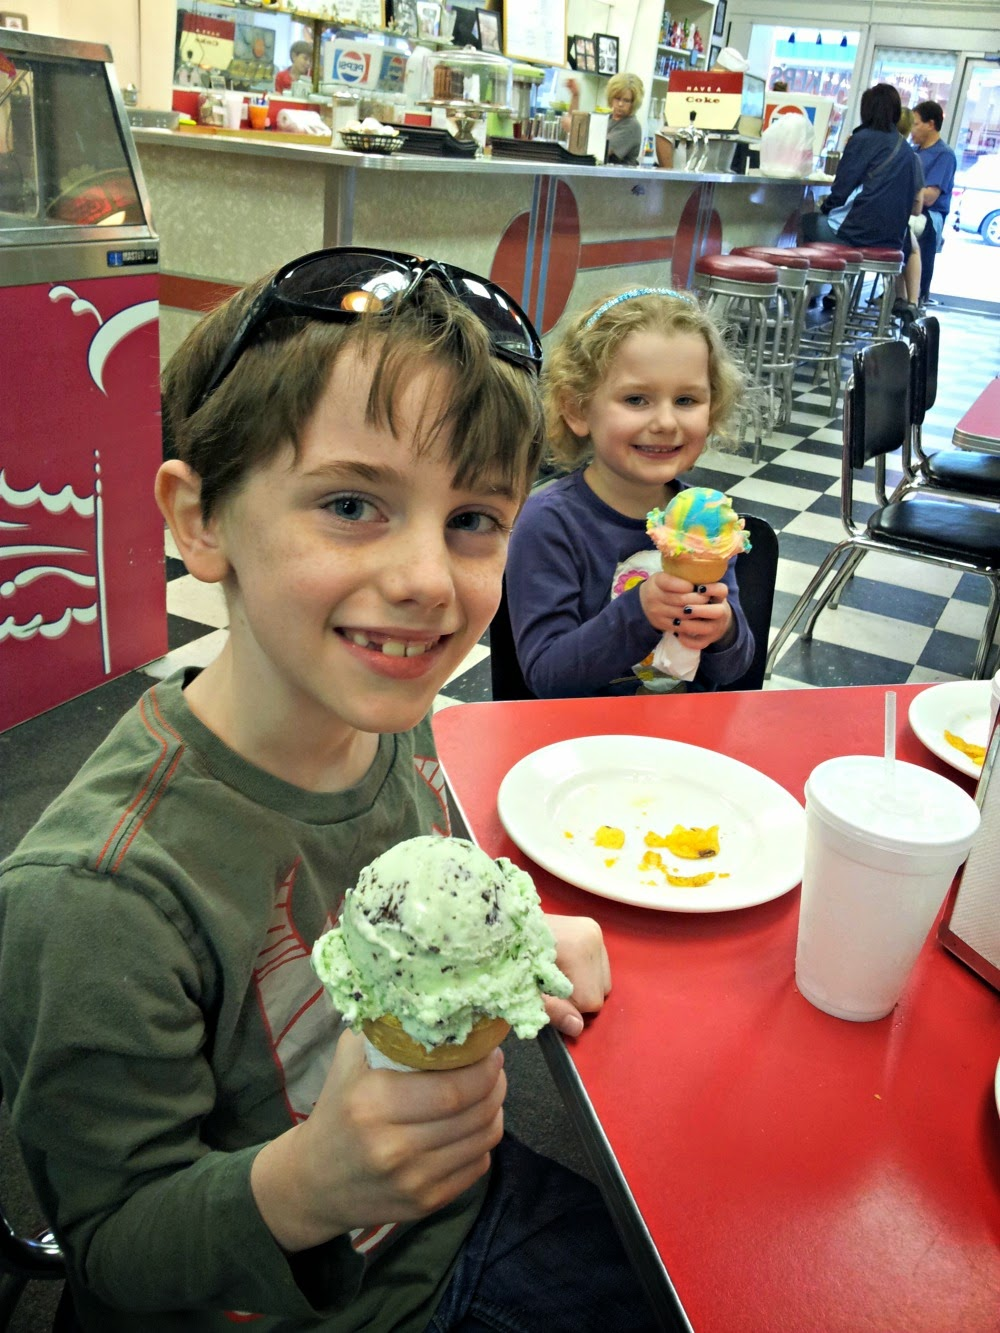 HinesSight Blog Travels to Mayberry (Mt. Airy, N.C.)